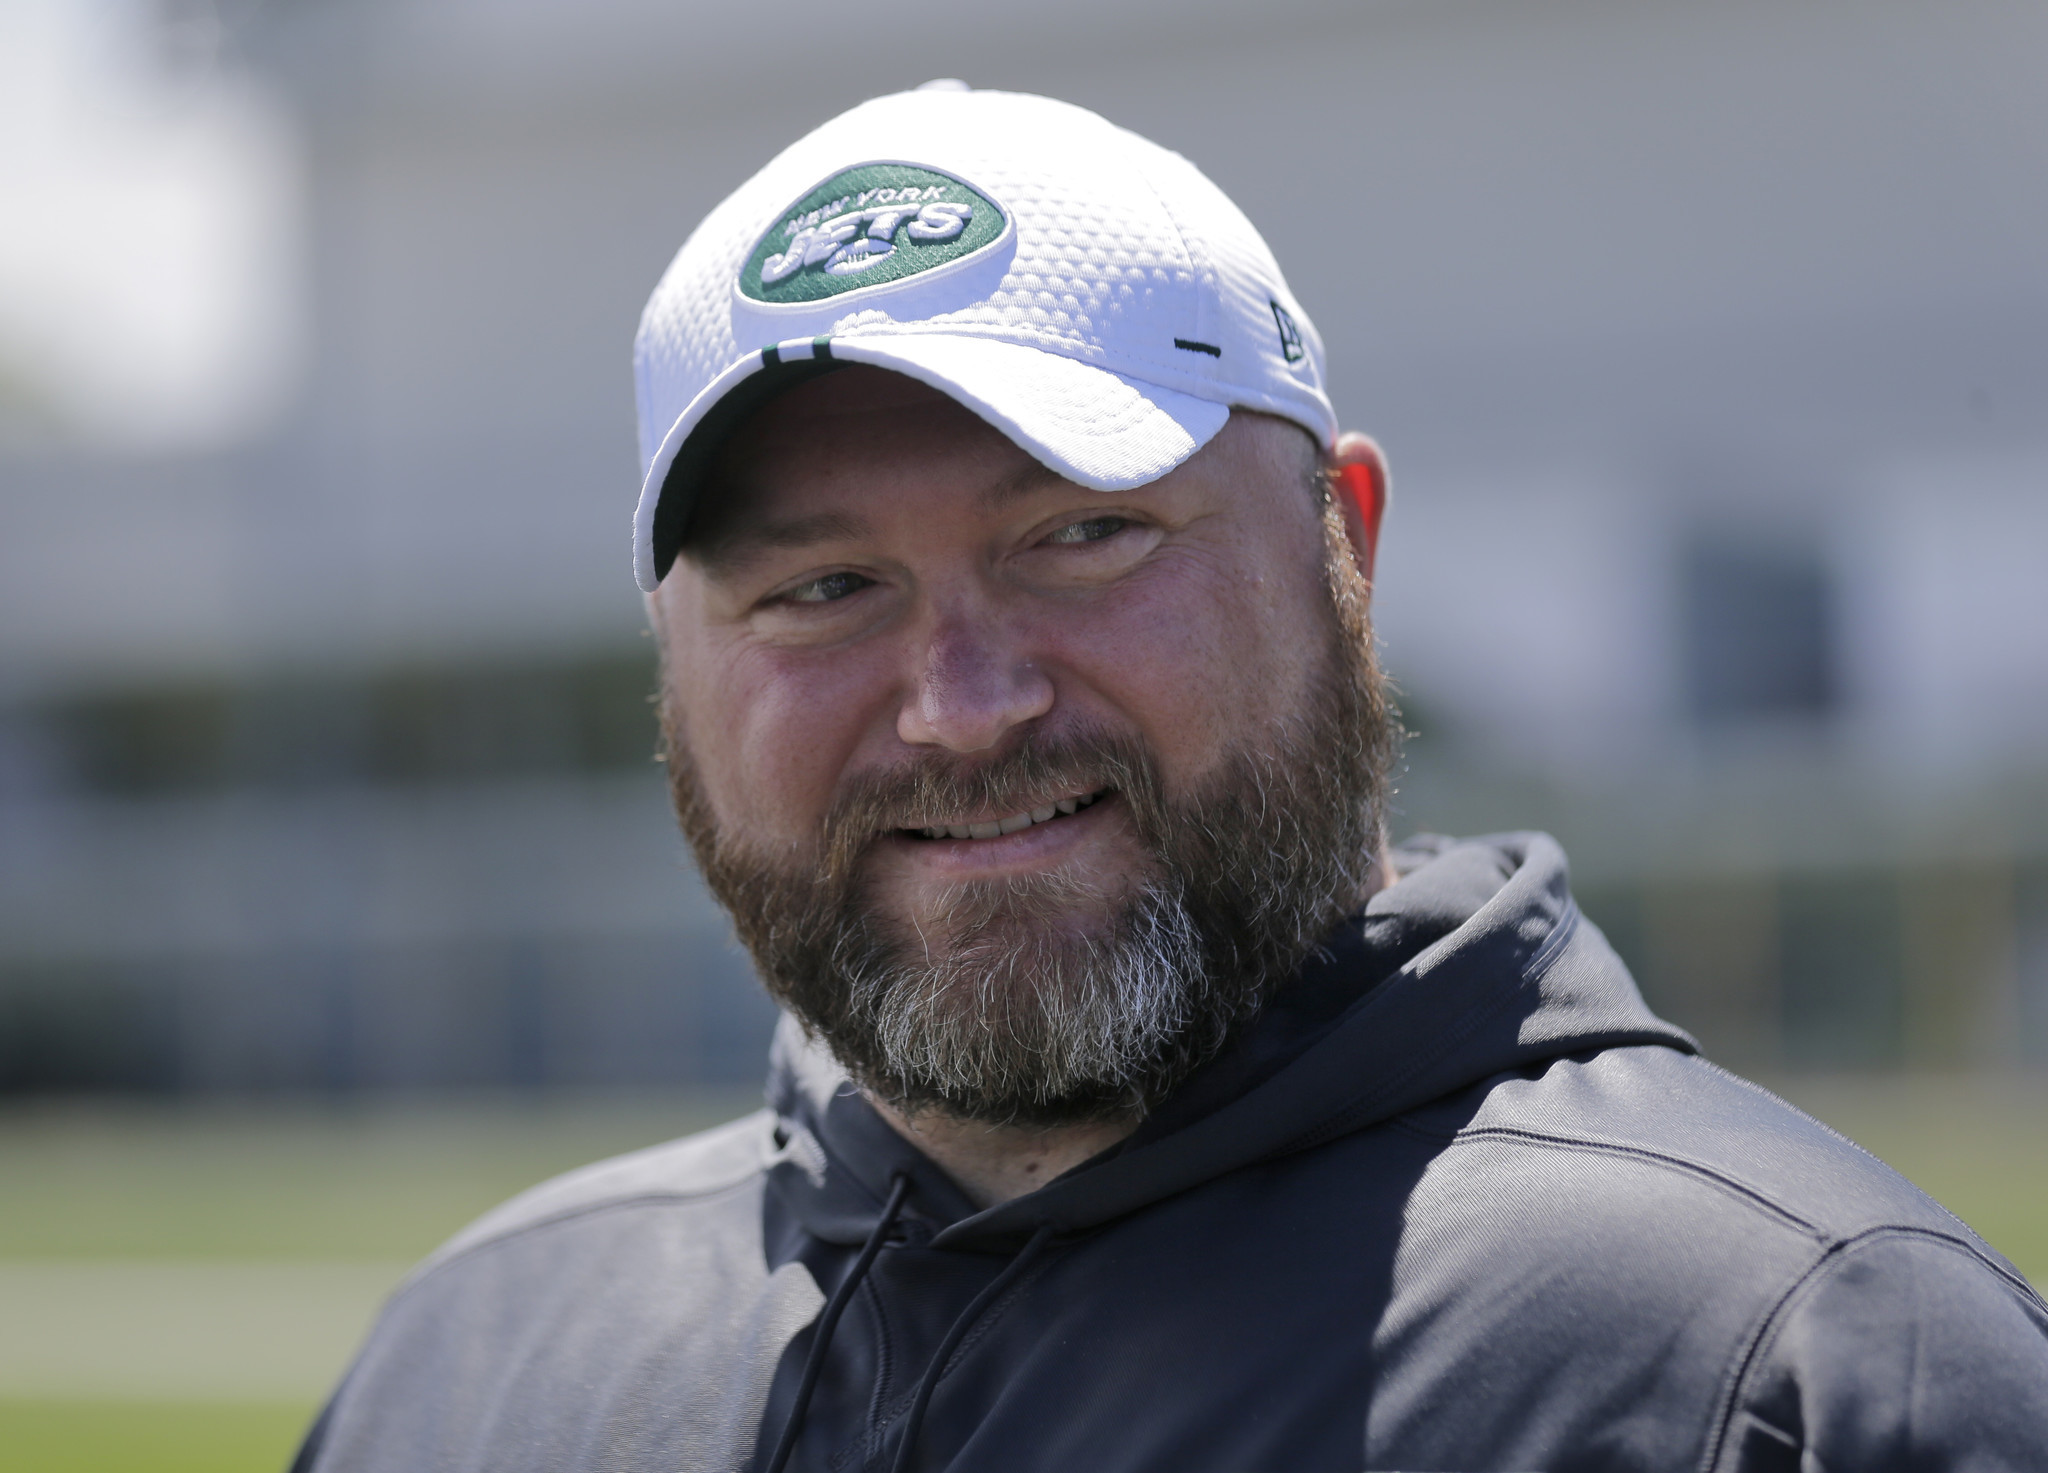 Jets 2020 free agency tracker: Follow Joe Douglas' moves in his first free agency